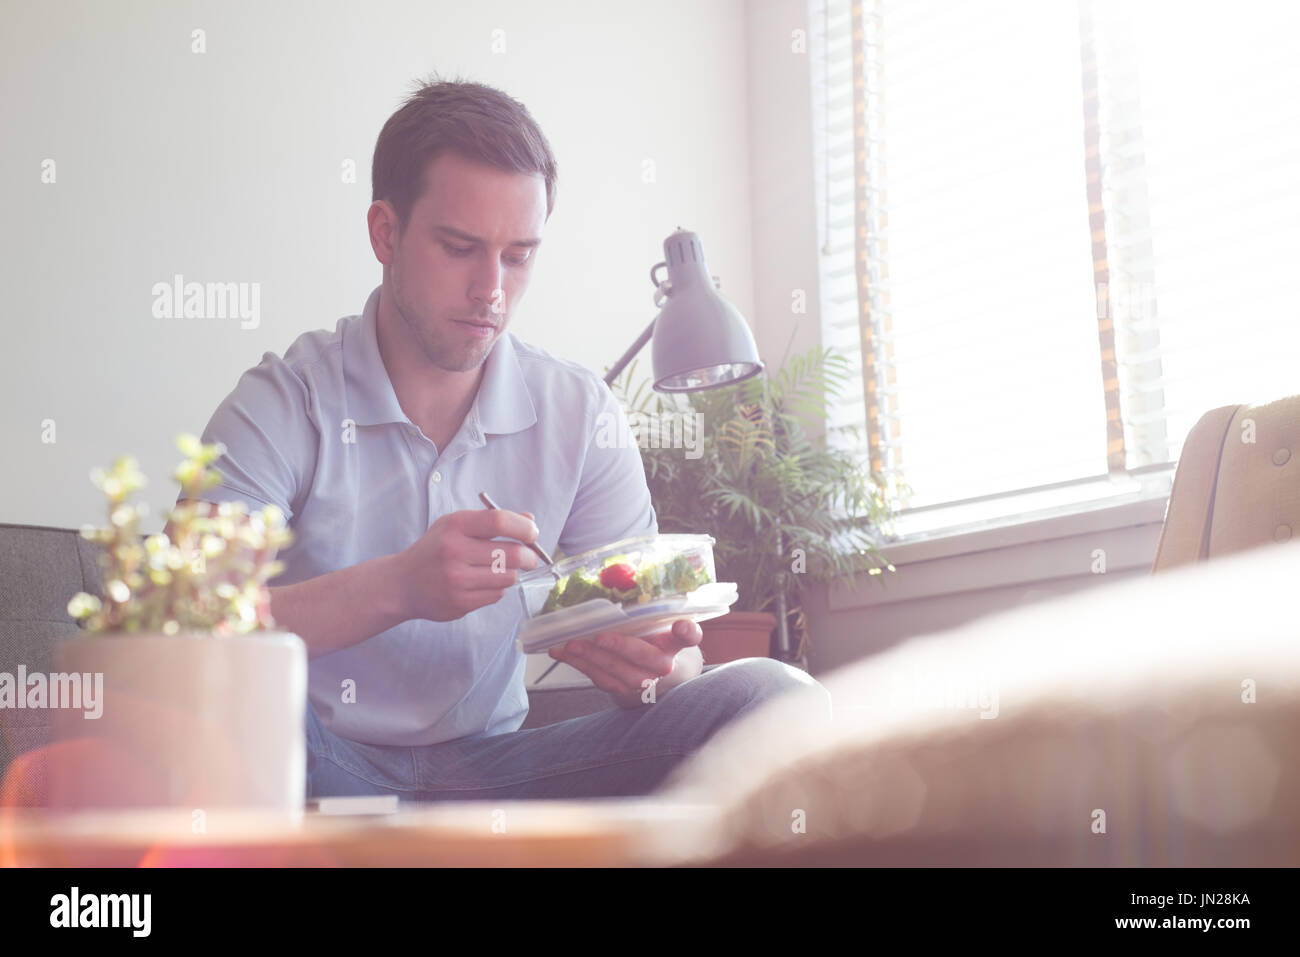 Man having food while sitting on sofa by window at home - Stock Image